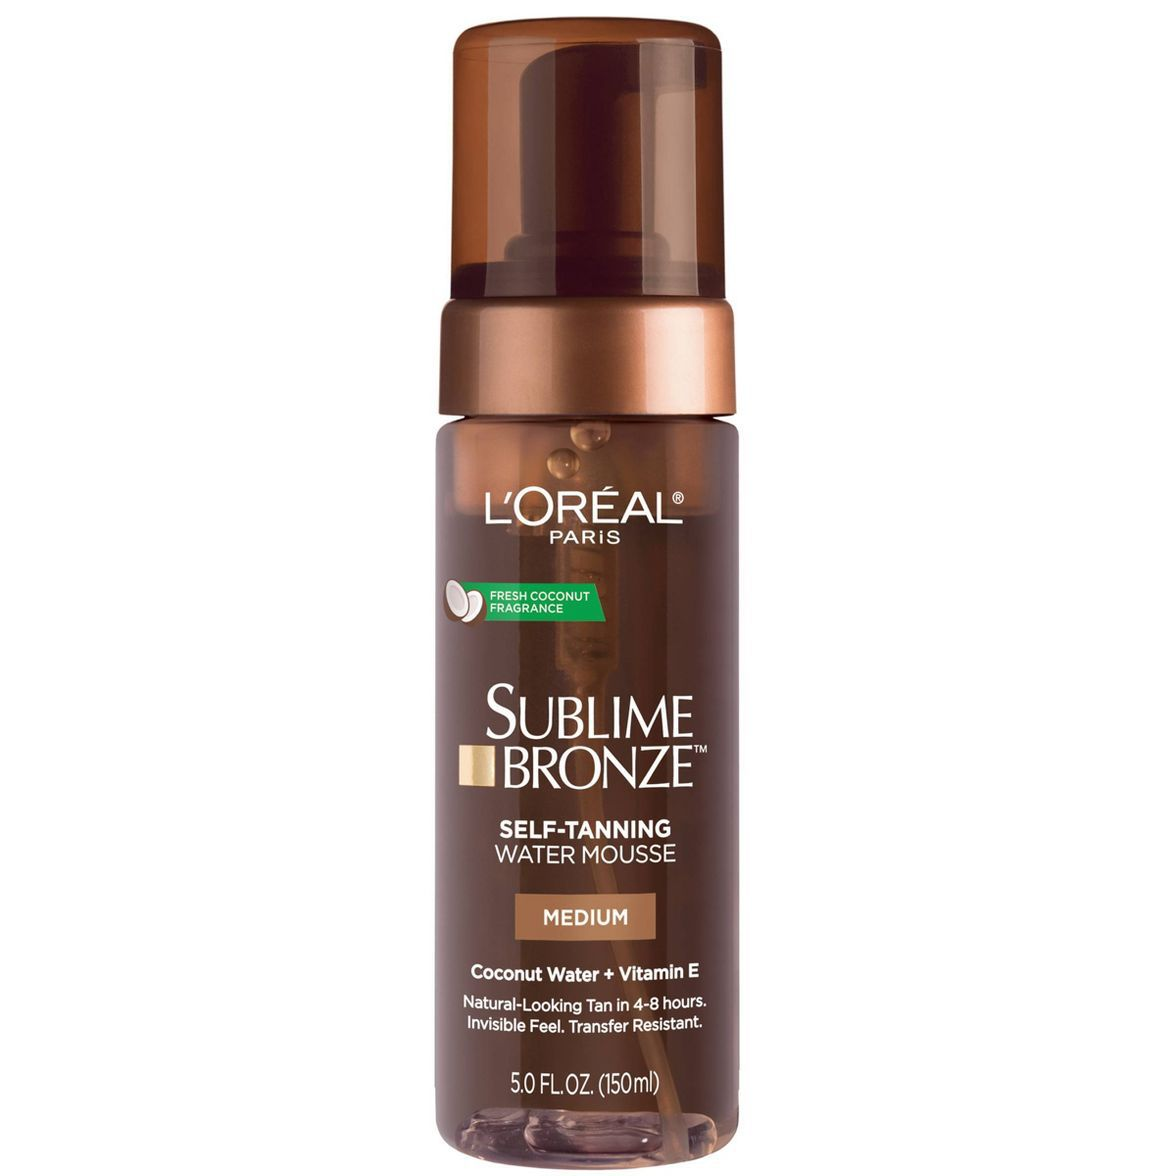 L'Oreal Paris Sublime Bronze Hydrating Self-Tanning Water Mousse